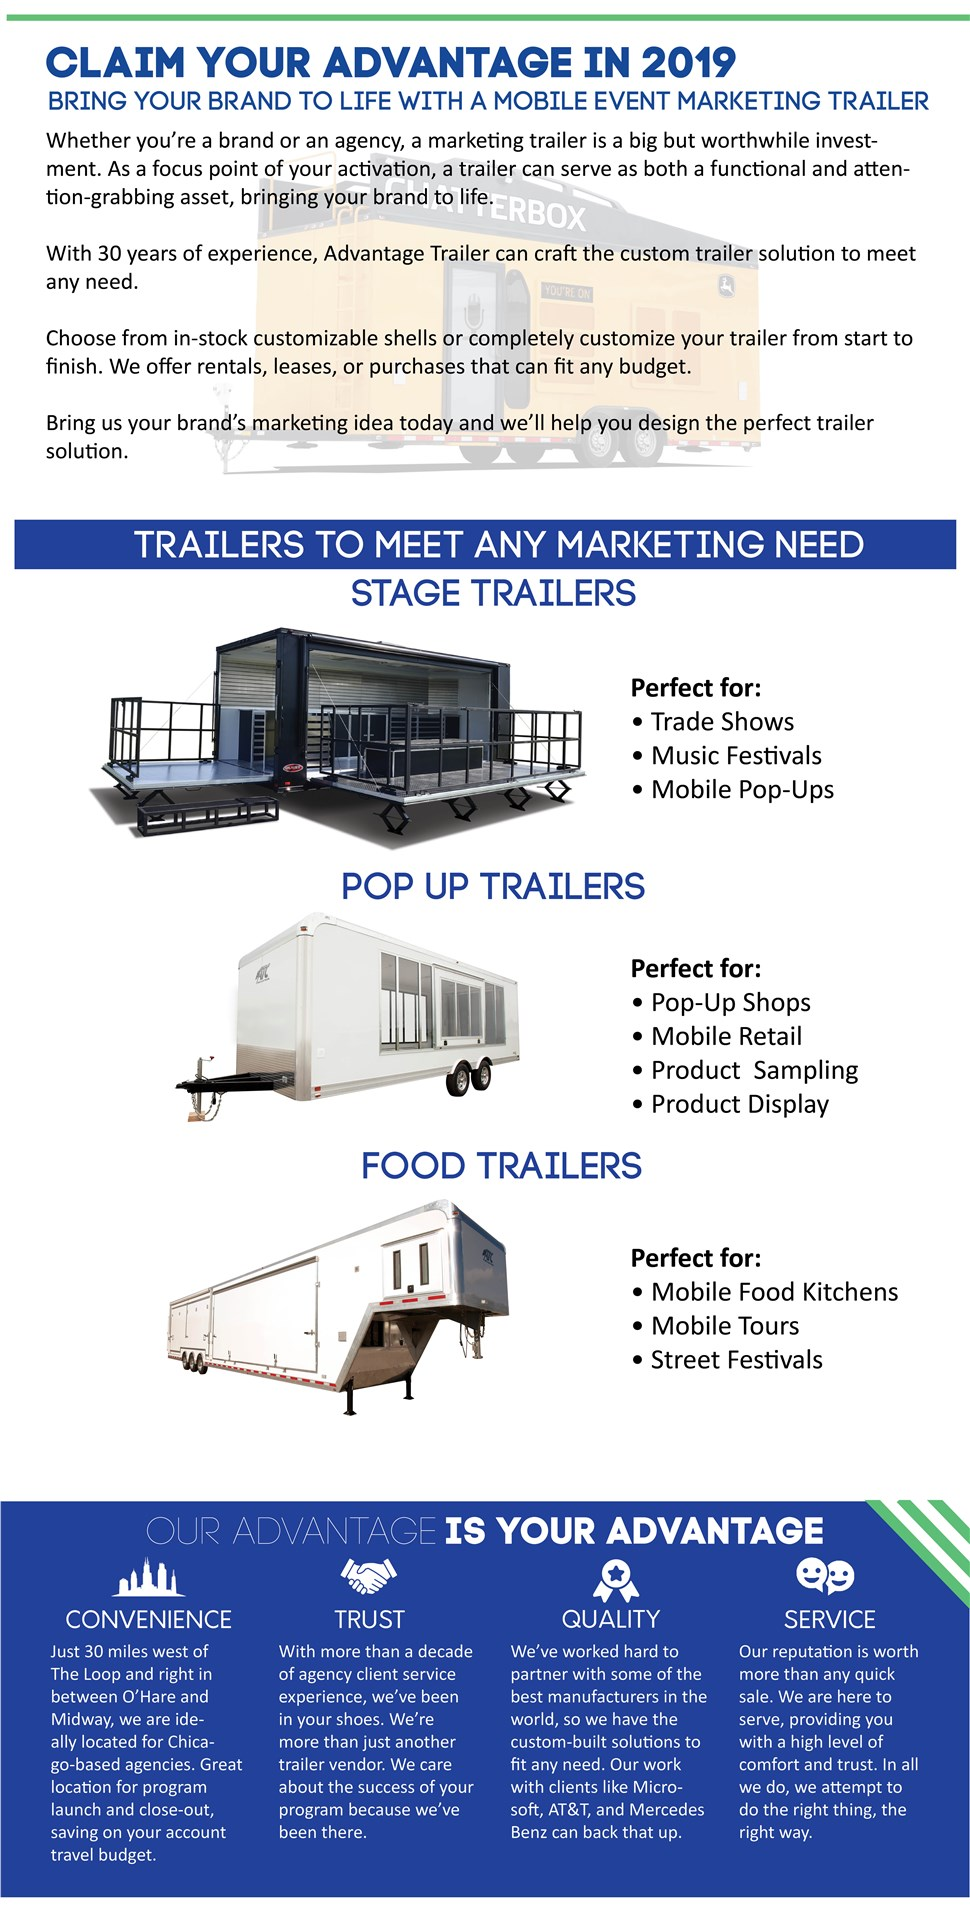 How can we serve your Mobil Event Marketing Trailer needs today?